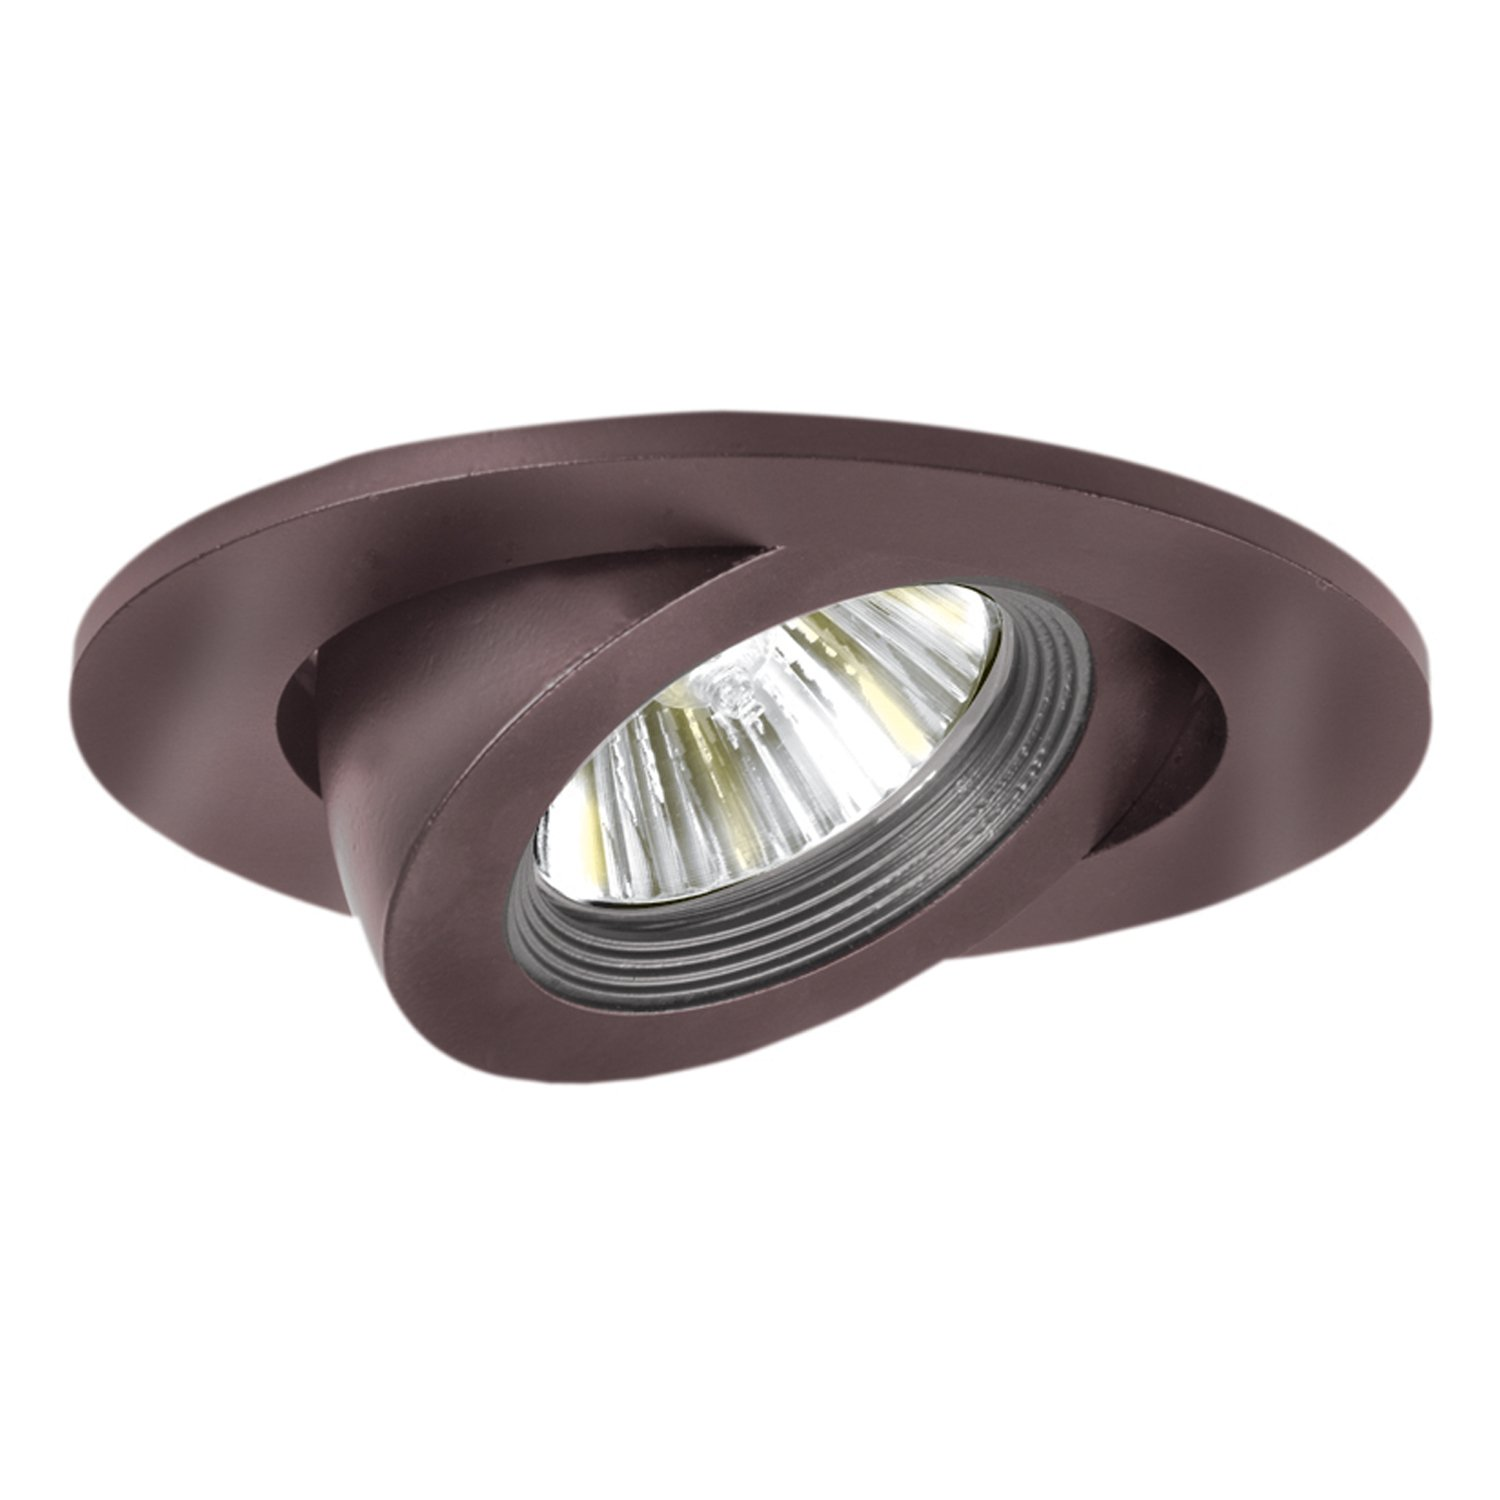 halo recessed lighting trim black. amazon.com: halo recessed 3009tbzbb 3-inch 35-degree trim adjustable gimbal tuscan bronze with black baffle: home improvement lighting